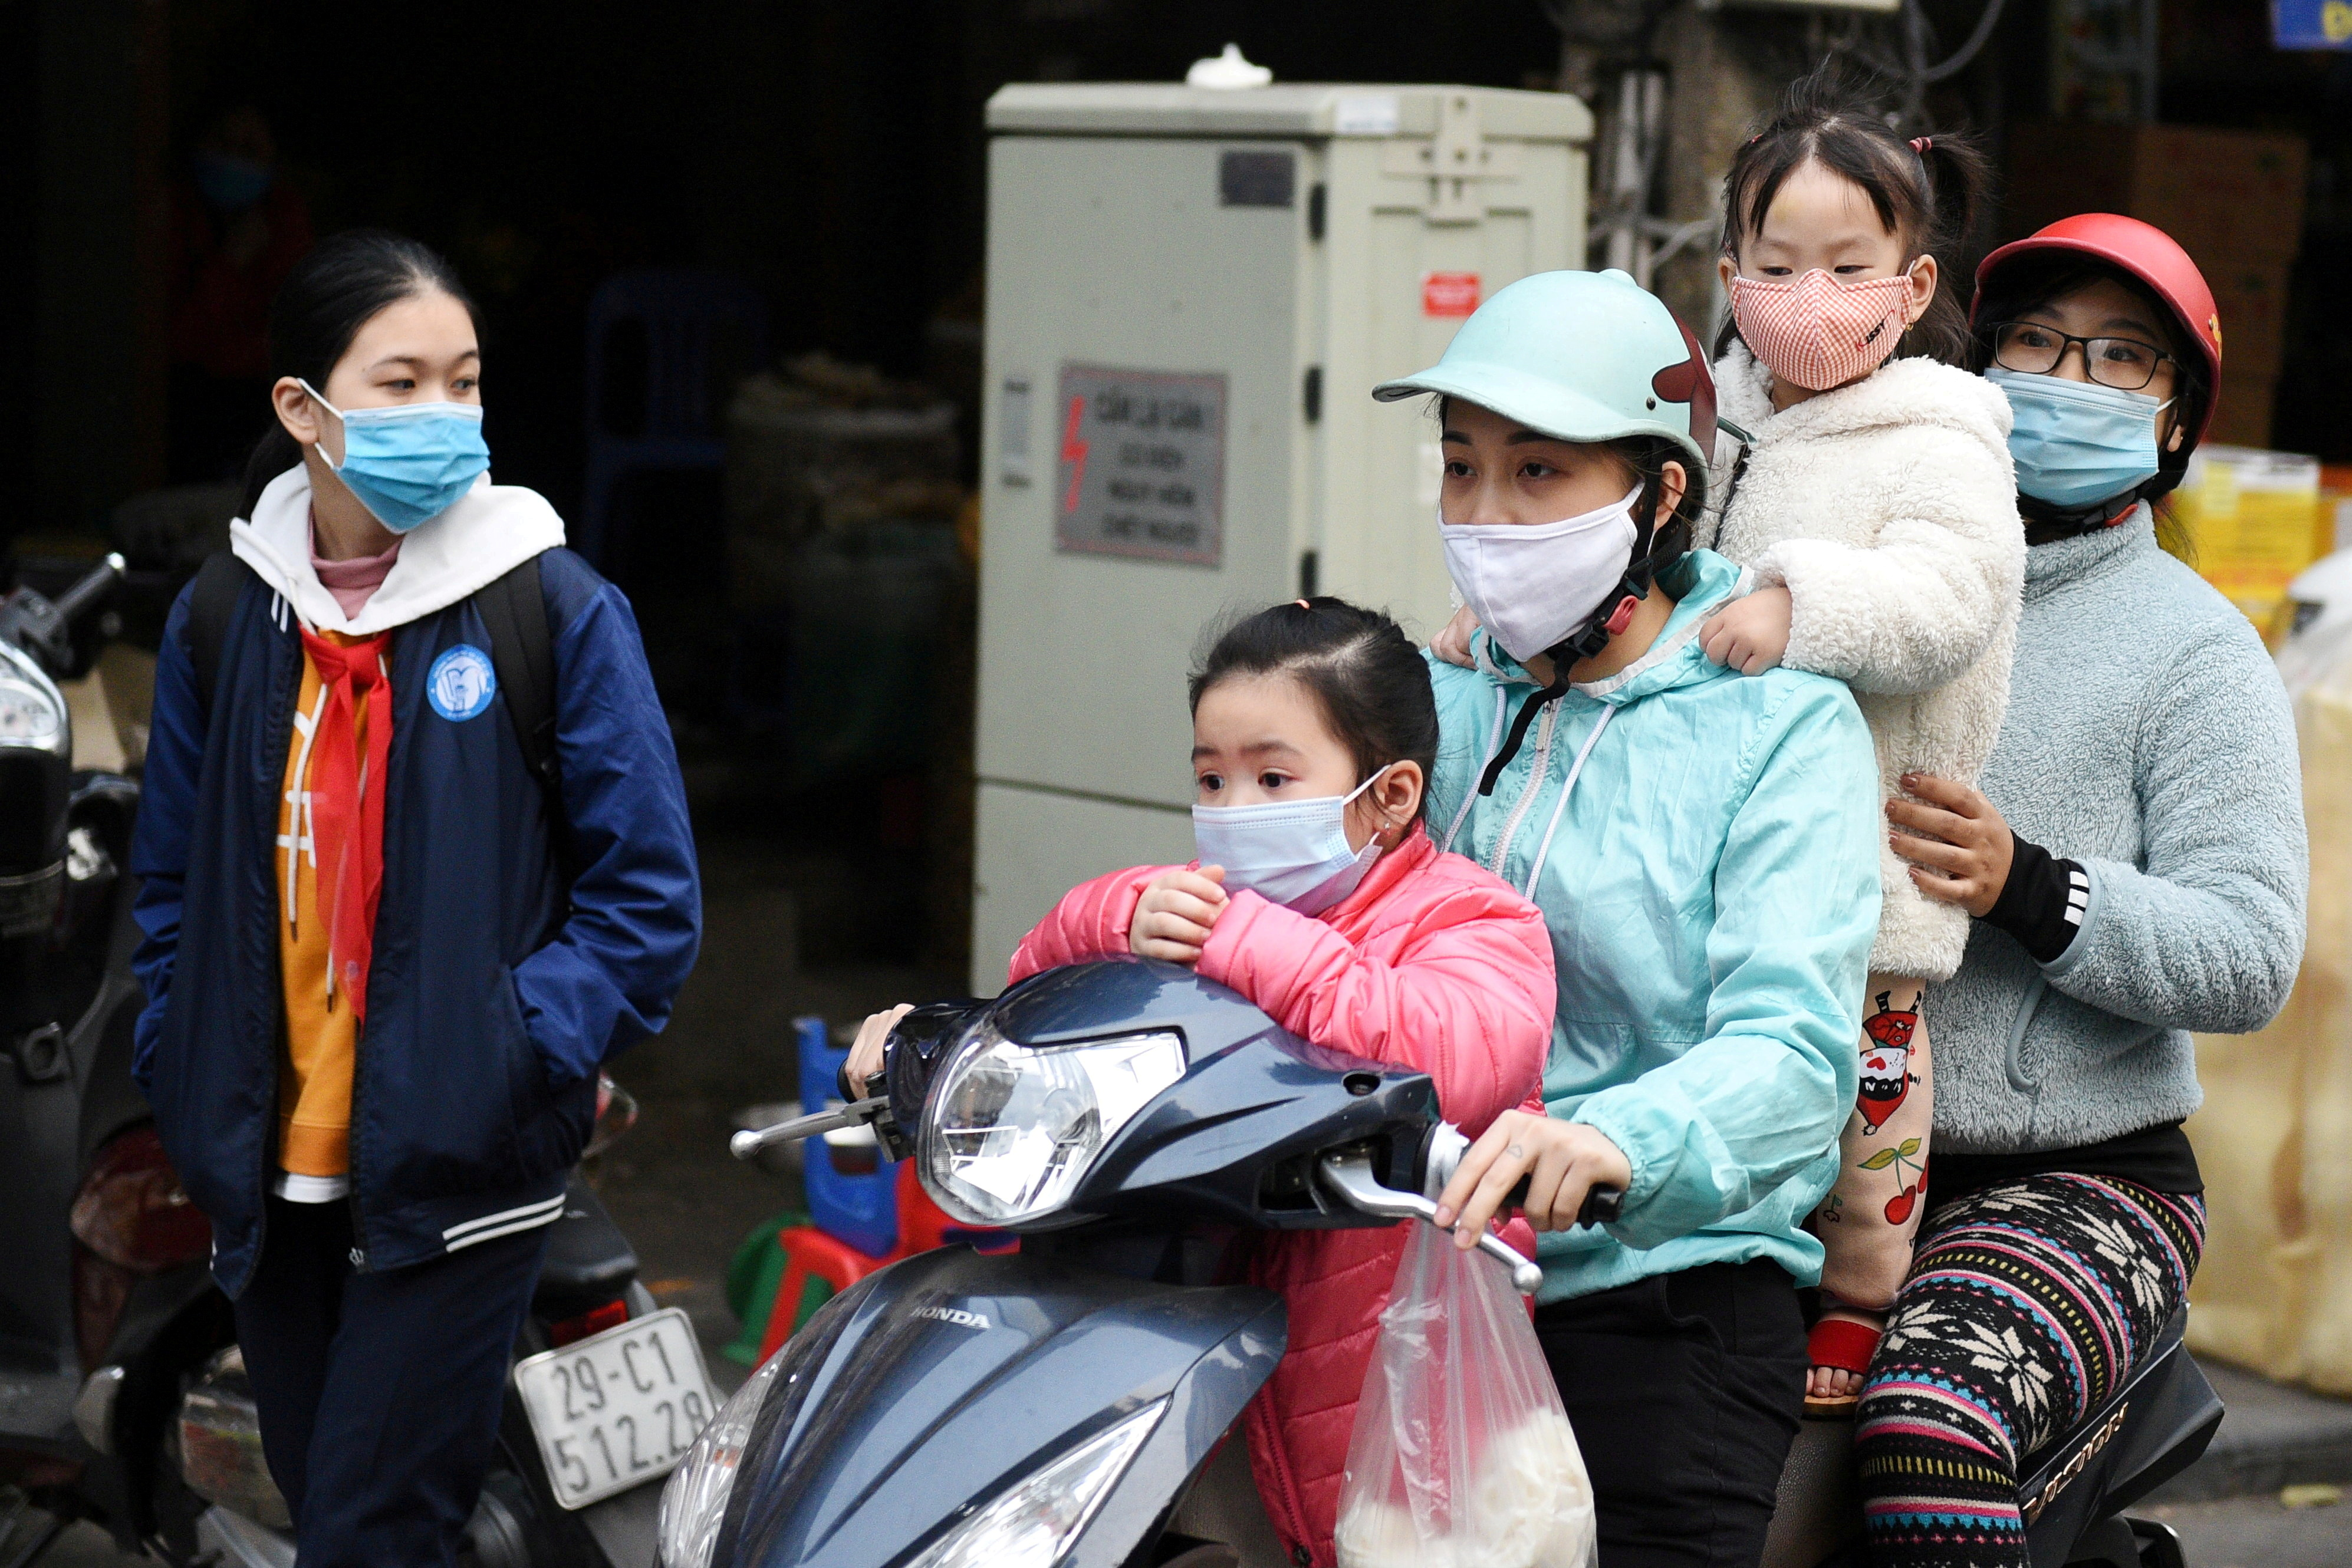 A family wears protective masks as they ride a motorbike in the street amid the coronavirus disease (COVID-19) outbreak in Hanoi, Vietnam, January 29, 2021. REUTERS/Thanh Hue